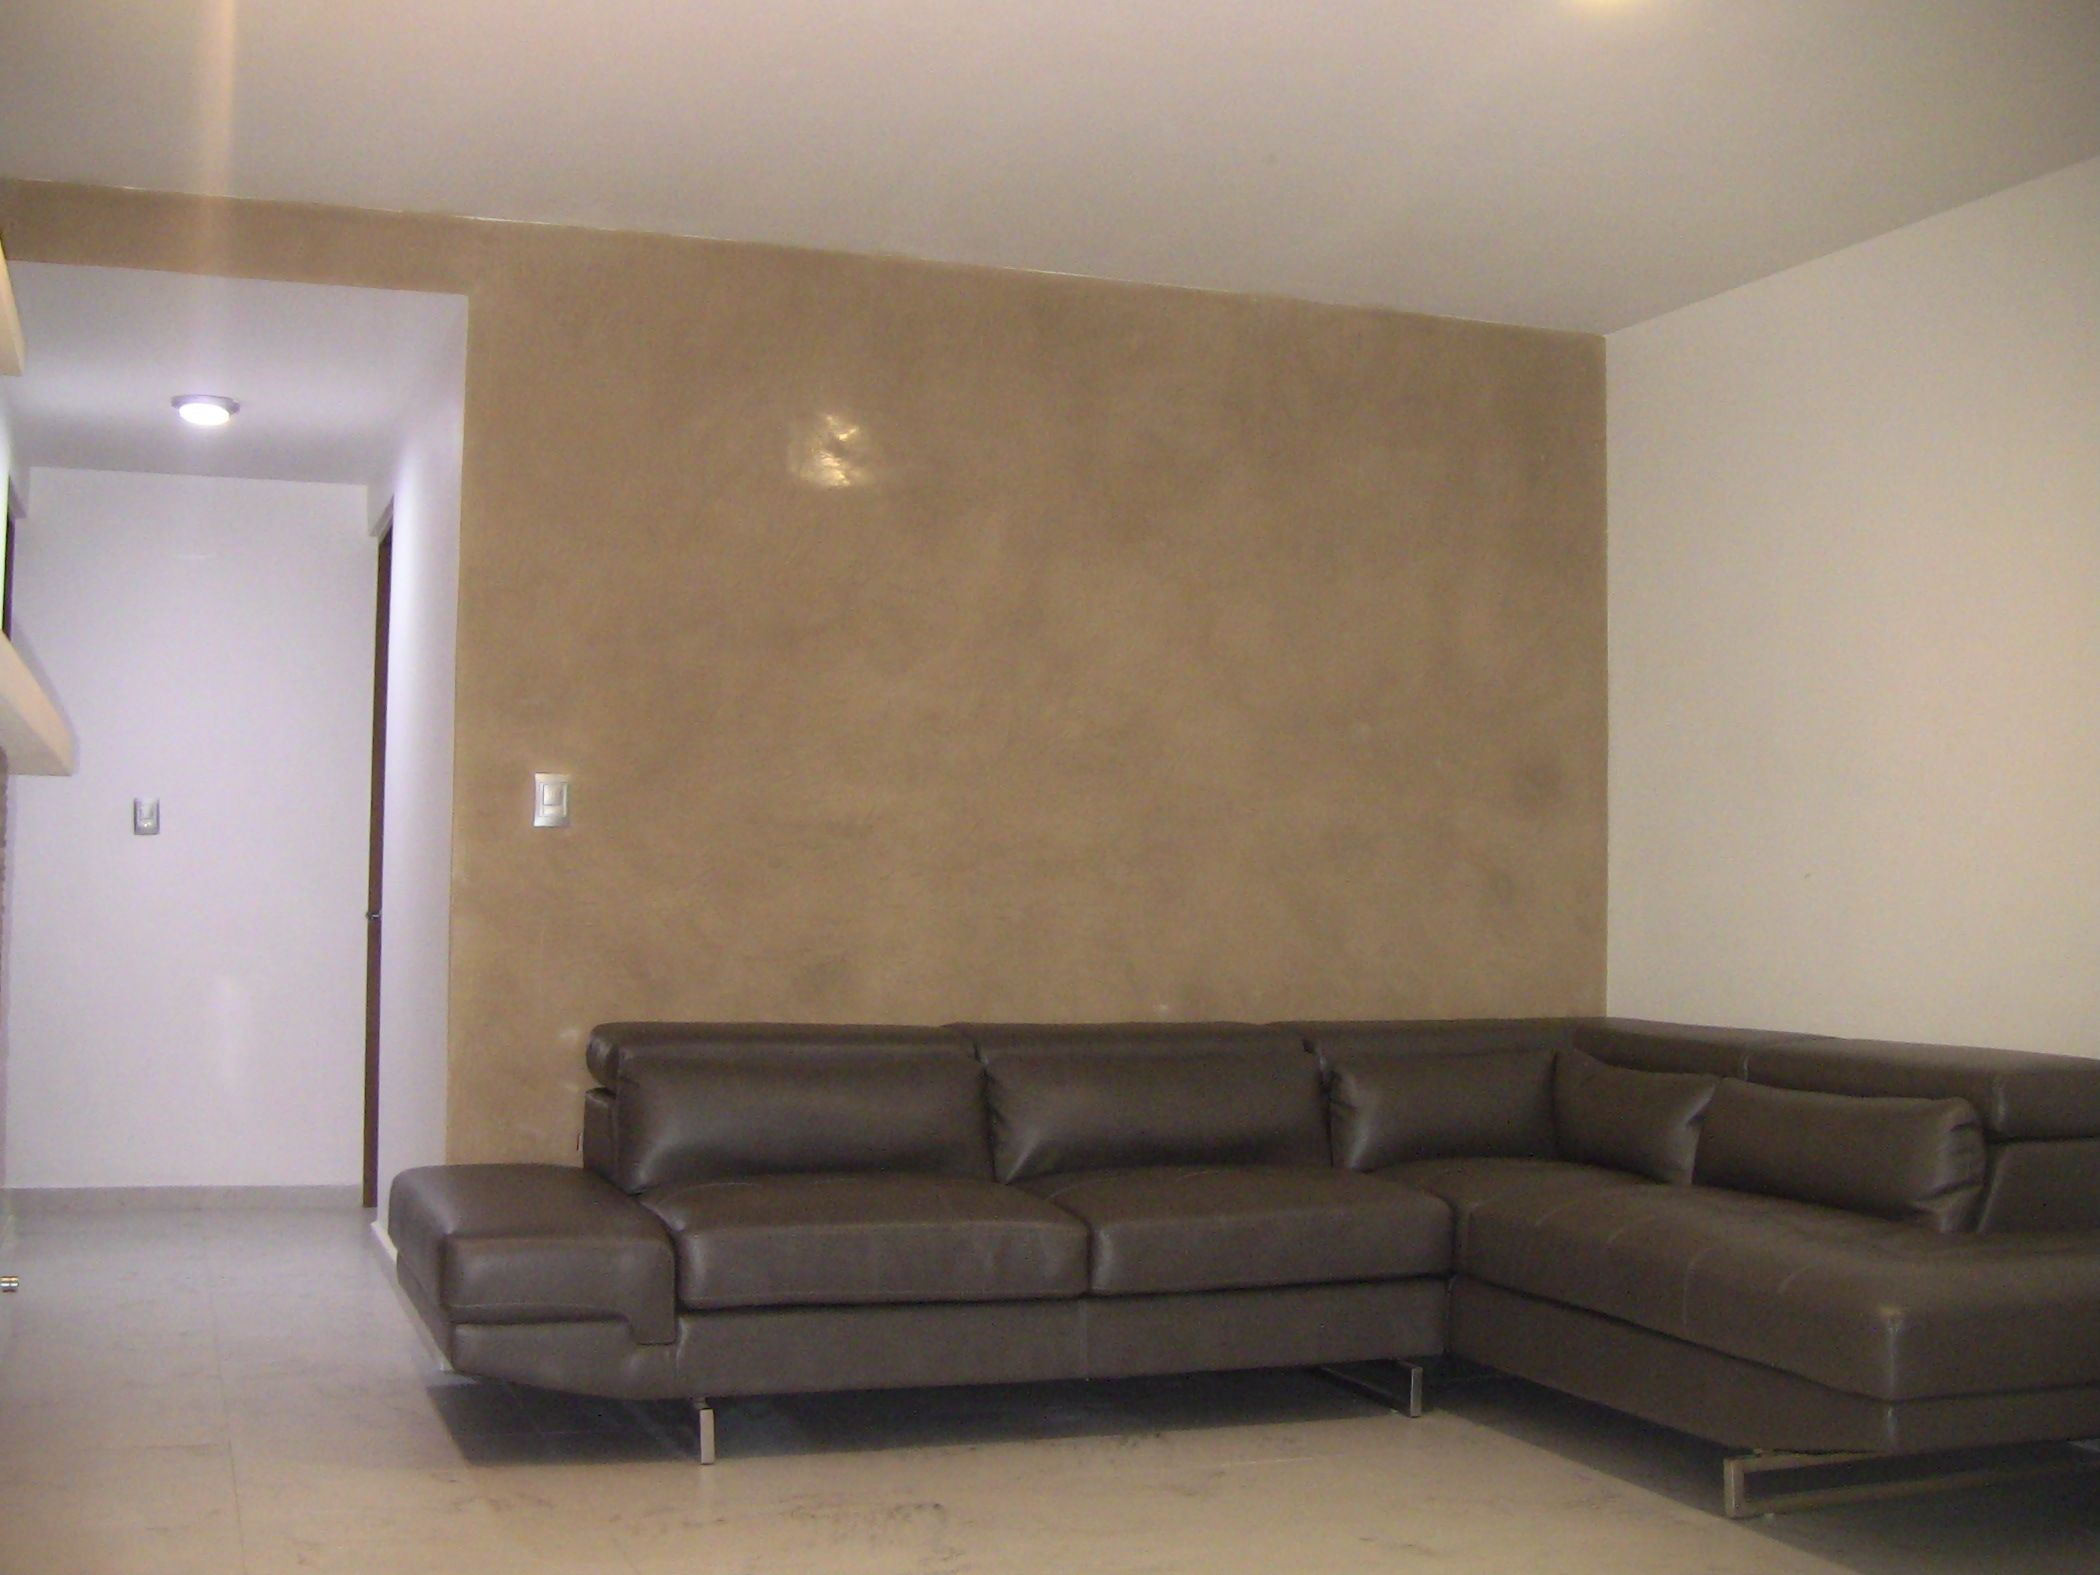 Pintura Granate Pared Proceso Concluido Decoracion Pinterest Decor New